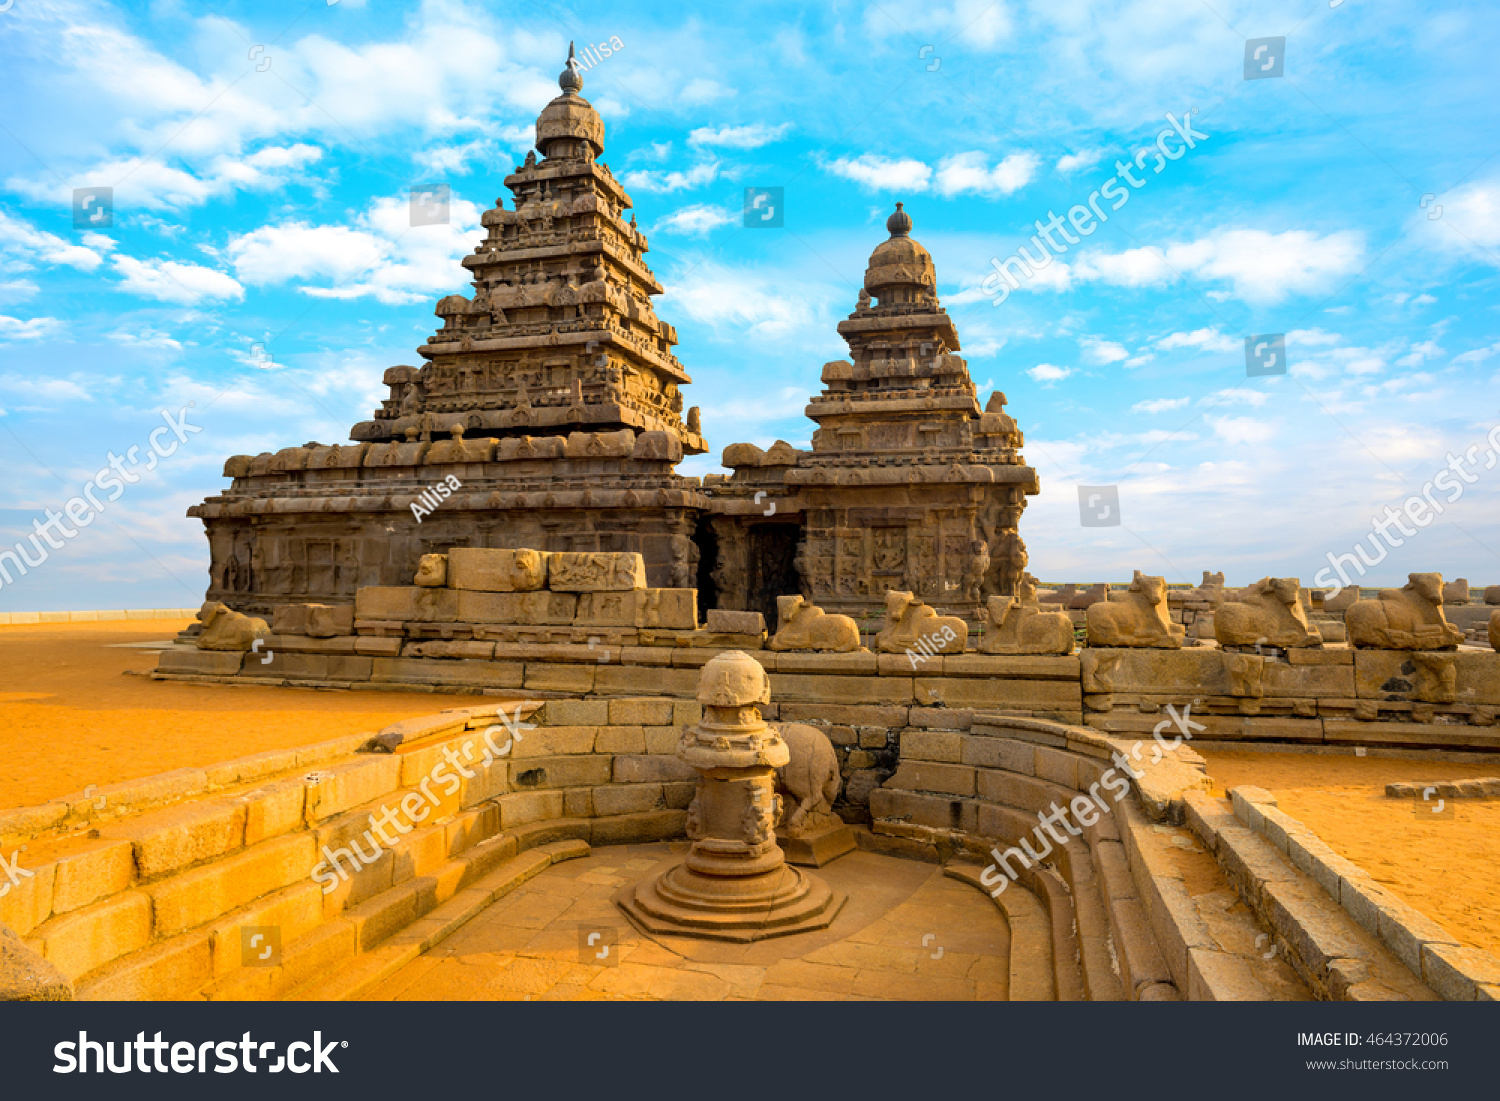 the famous temple-mahabalipuram essay A photo essay on shore temple mamallapuram  shore temple mahabalipuram see more  the caves were famous as one of the many places that emperor asoka had visited .